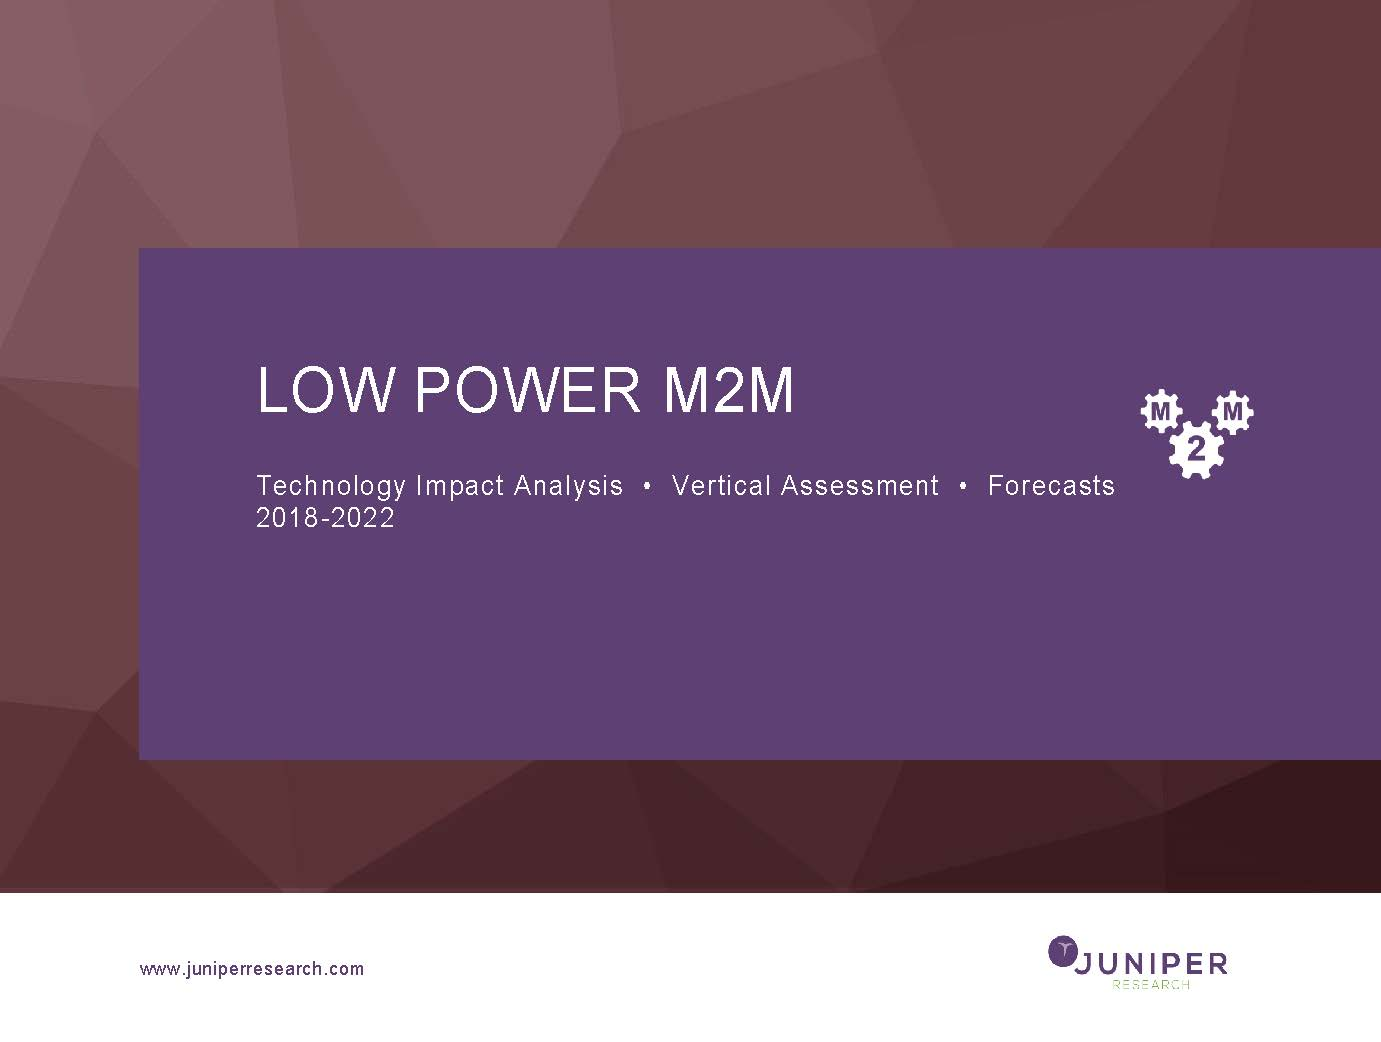 Low Power M2M: Technology Impact Analysis, Vertical Assessment & Forecasts 2018-2022